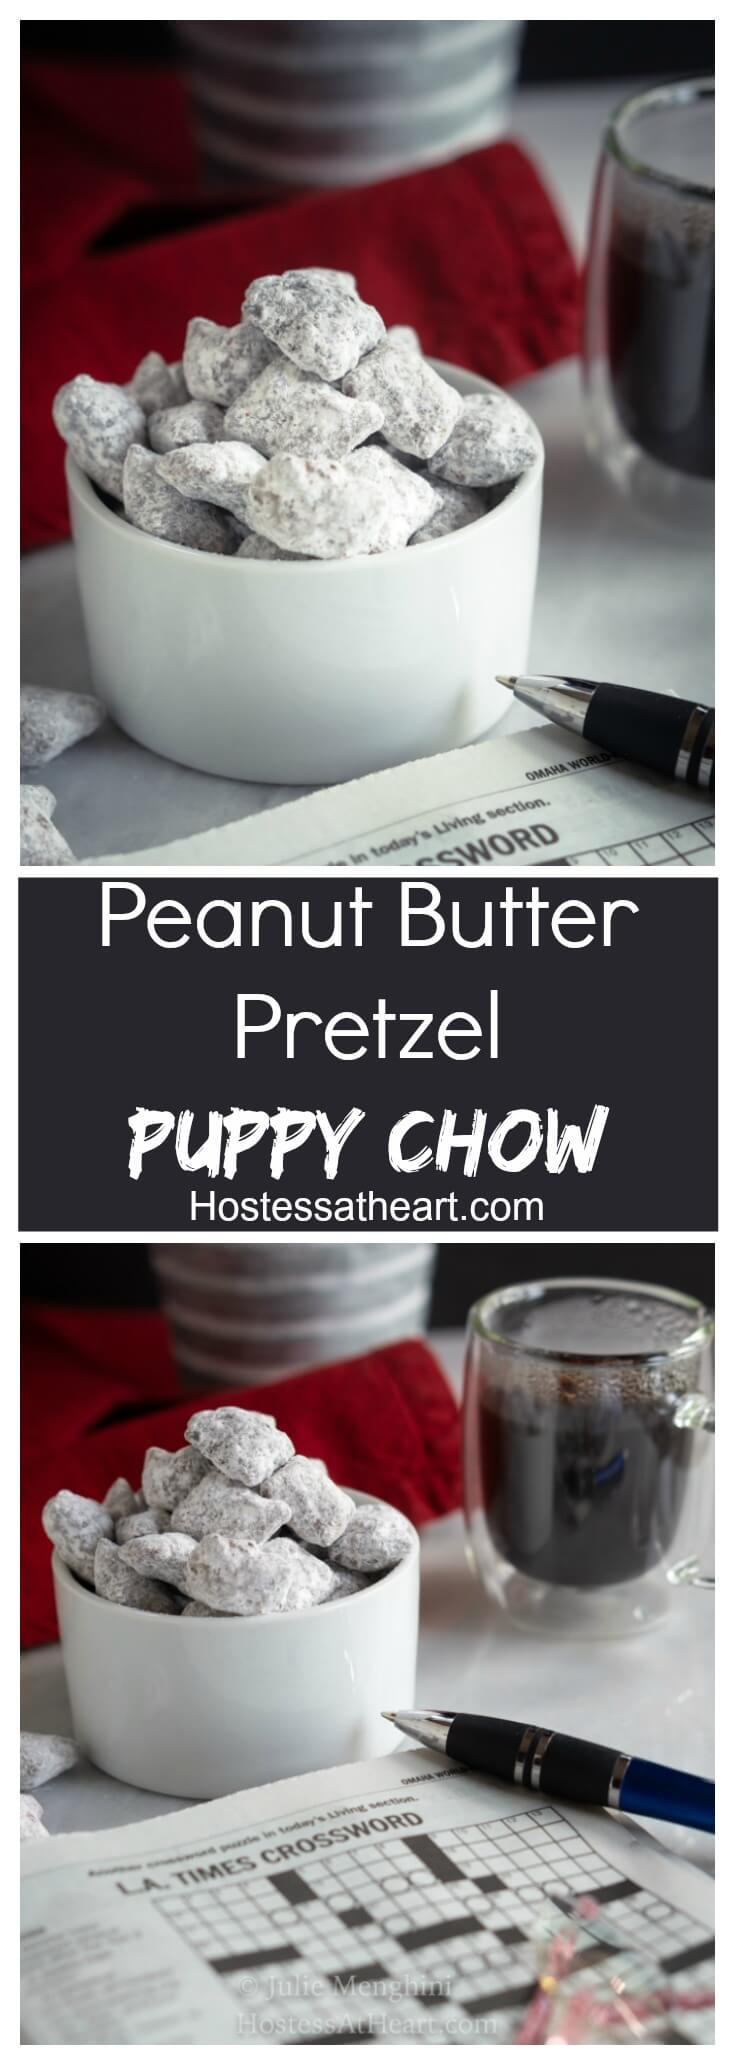 This Peanut Butter Pretzel Puppy Chow recipe is going to change your puppy chow world.  They're sweet, crunchy, and satisfy that peanut butter craving! | HostessAtHeart.com #FreakyFridayRecipes #puppychow #snacks #snackfood #snackrecipes #christmas #christmastreats